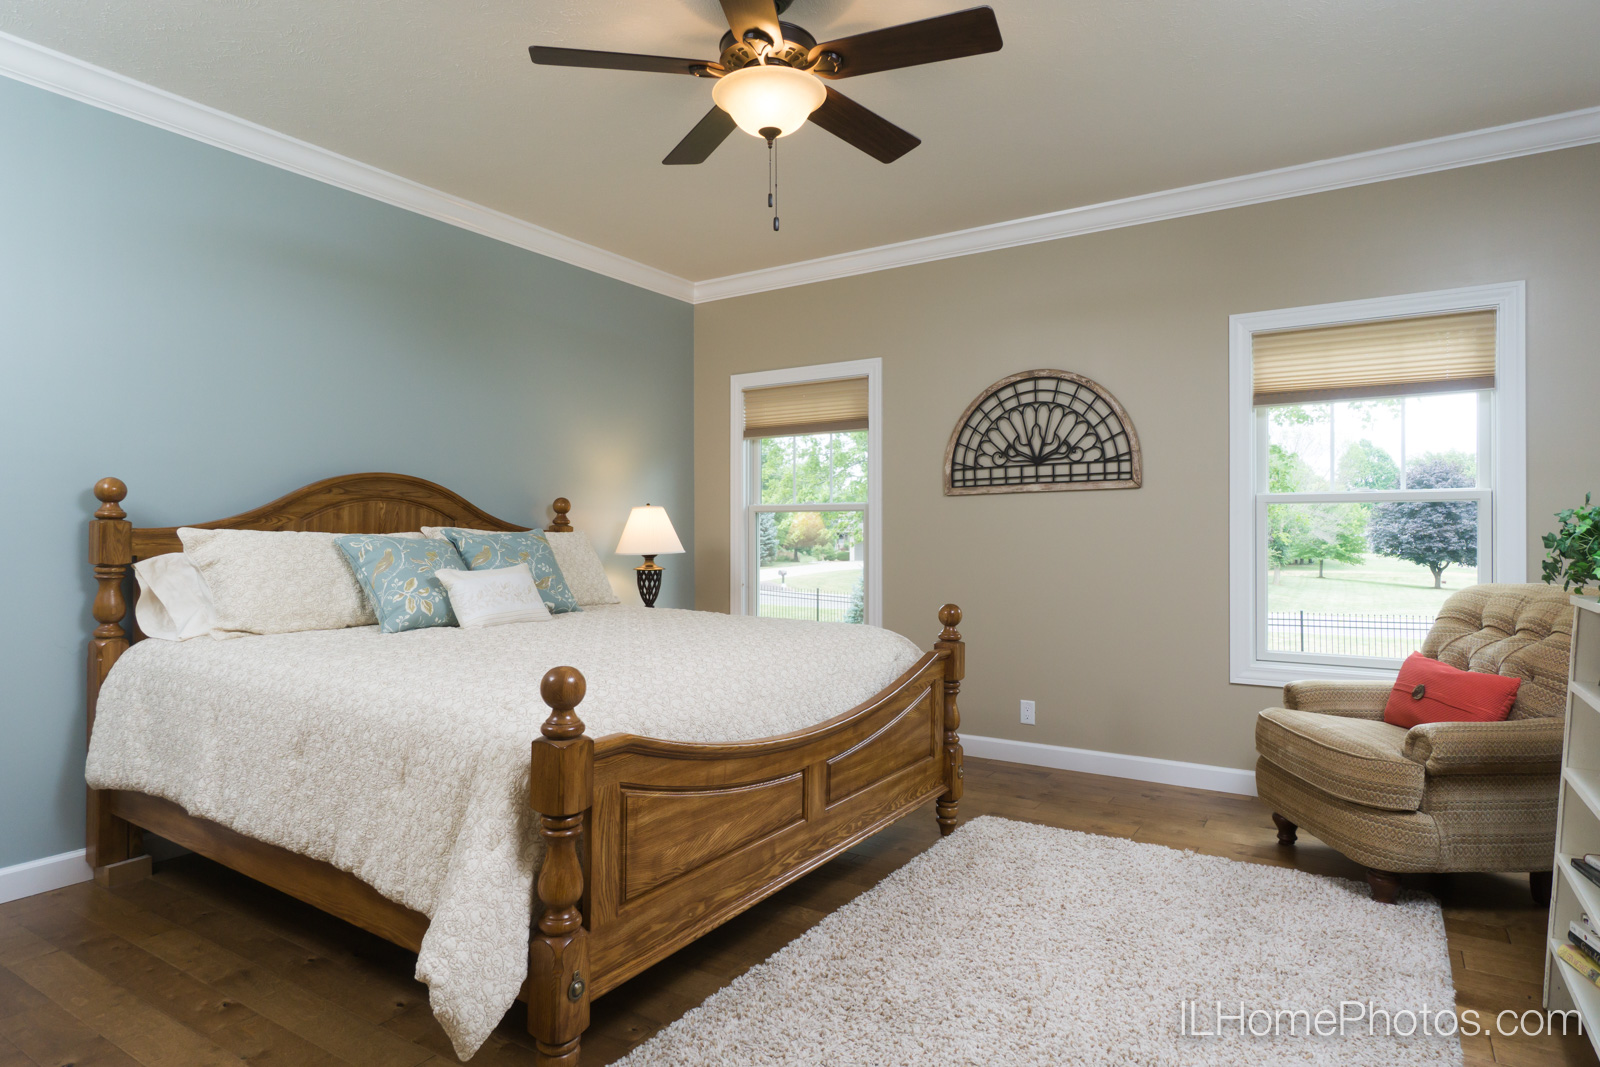 Interior master bedroom photograph for real estate in Springfield, IL :: Illinois Home Photography by Michael Gowin, Lincoln, IL